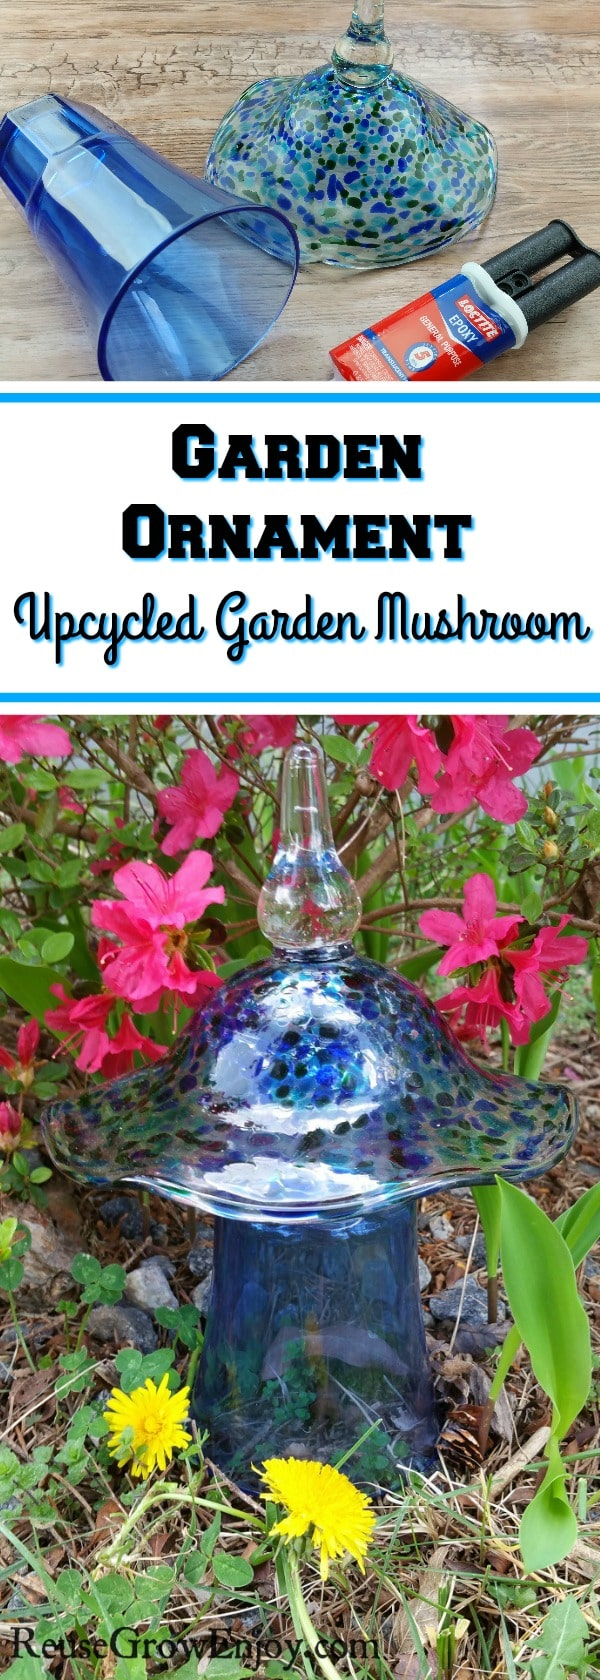 If you have some glass pieces that no longer match other items in the kitchen or maybe half have been broken, here is a cool upcycle project to check out. You can make an easy DIY mushroom garden ornament!